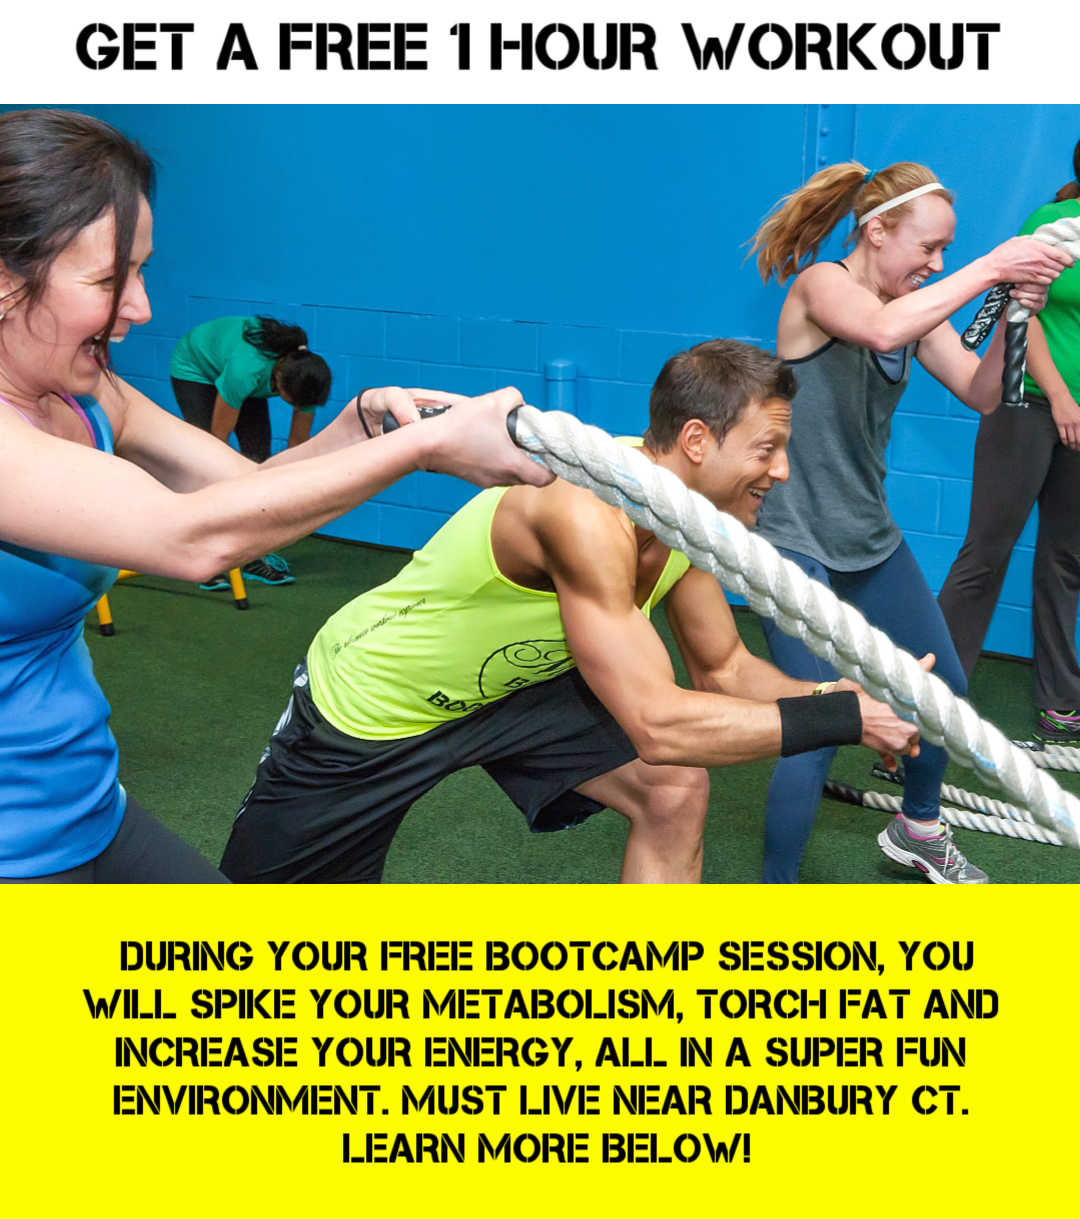 mbb bootcamp try free pass 13.11 (1).png